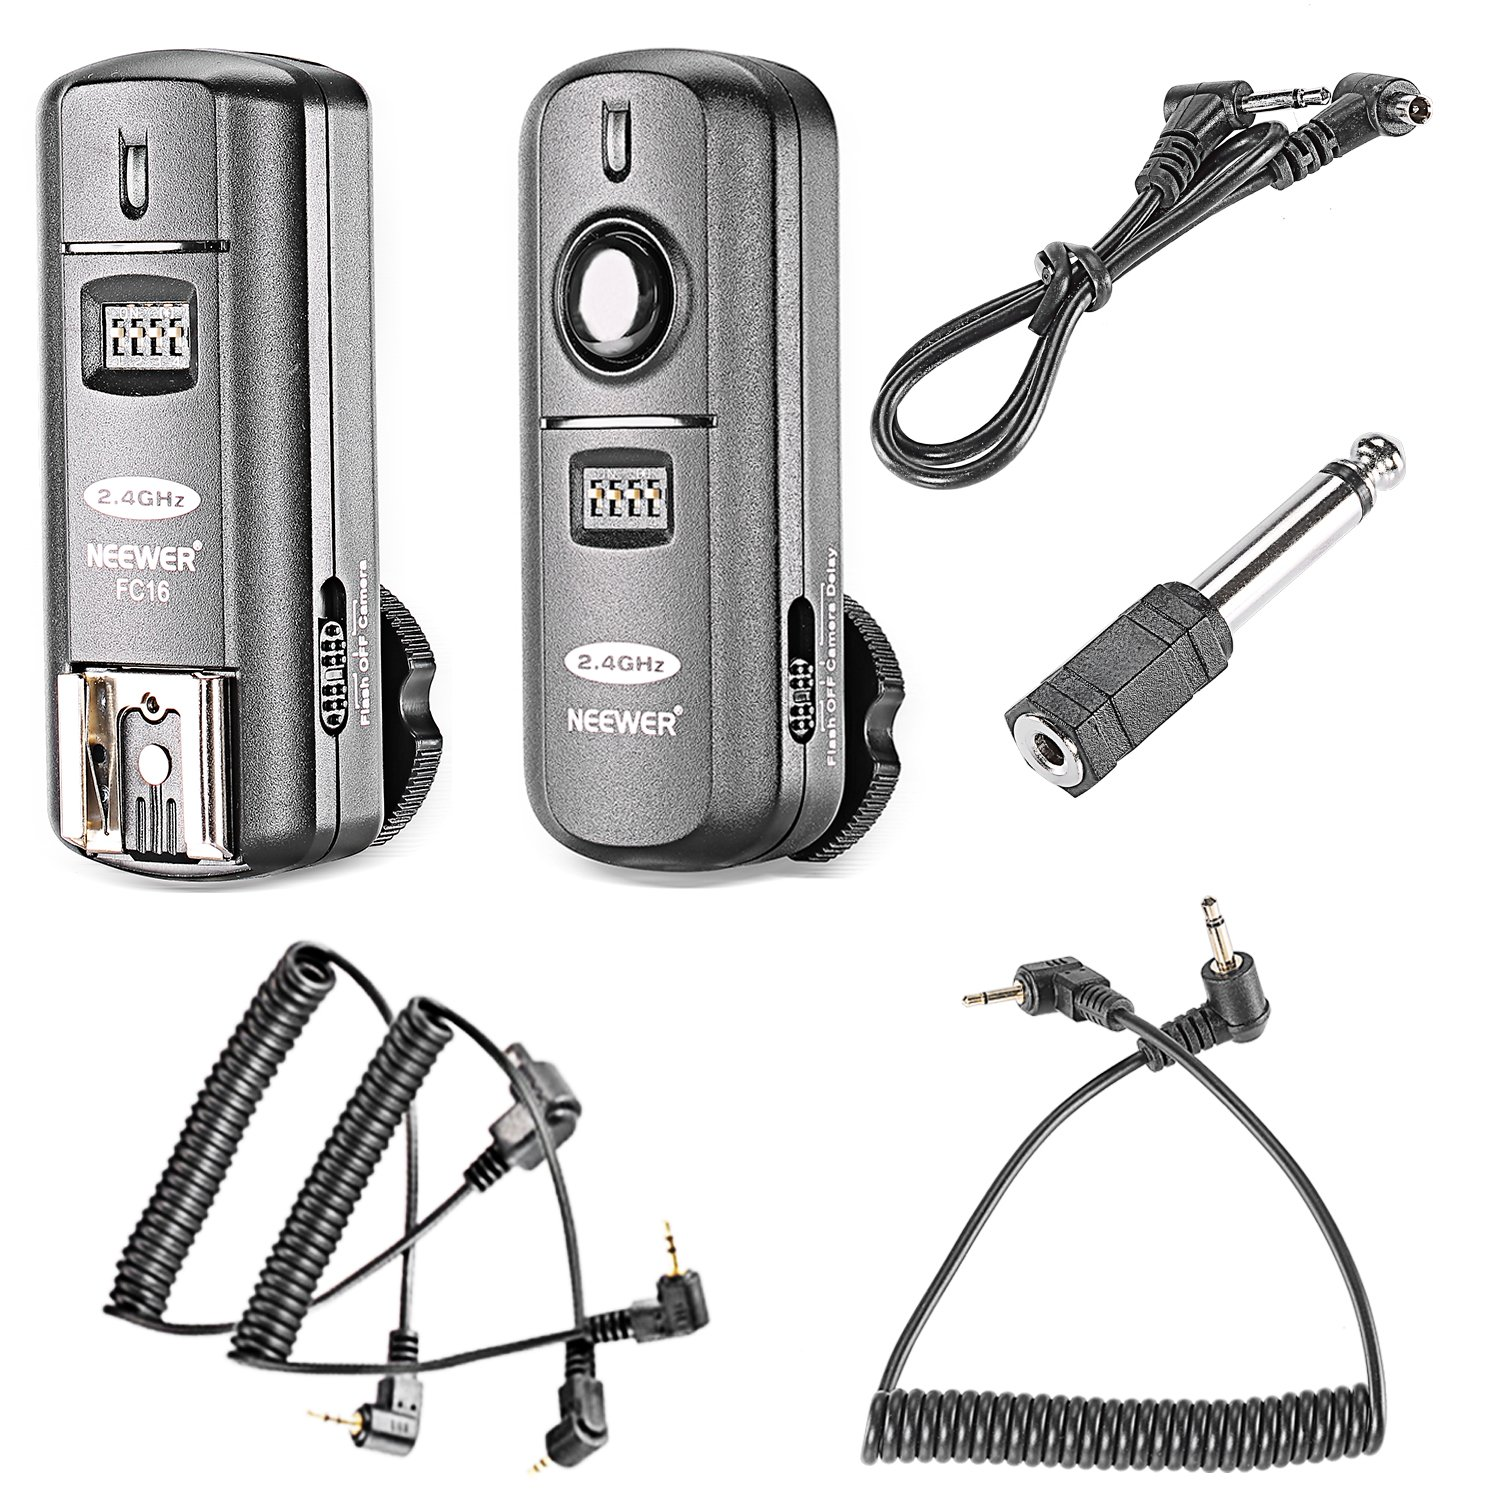 Neewer FC-16 3-IN-1 2.4GHz Wireless Flash Trigger with Remote Shutter Compatible with Canon Rebel T3 XS T4i T3i T2i Xsi EOS 1100D Mark IV 1D Mark III 5D Mark III 5D Mark II 50D 40D by Neewer